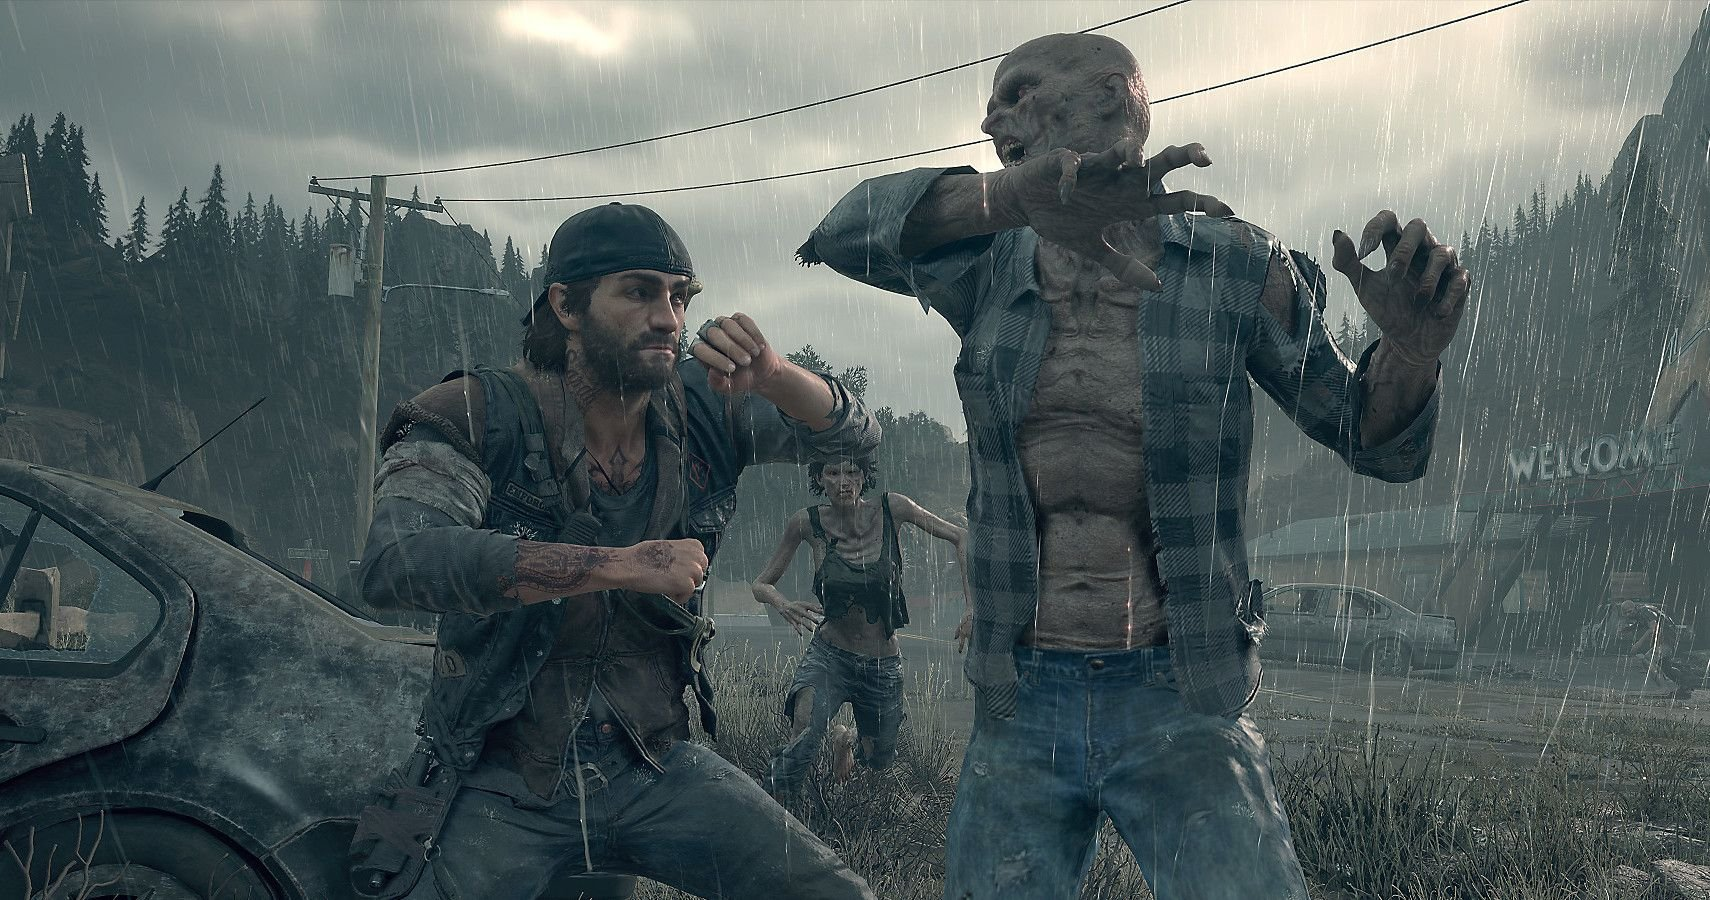 10 Best Zombie Games From The Last Decade